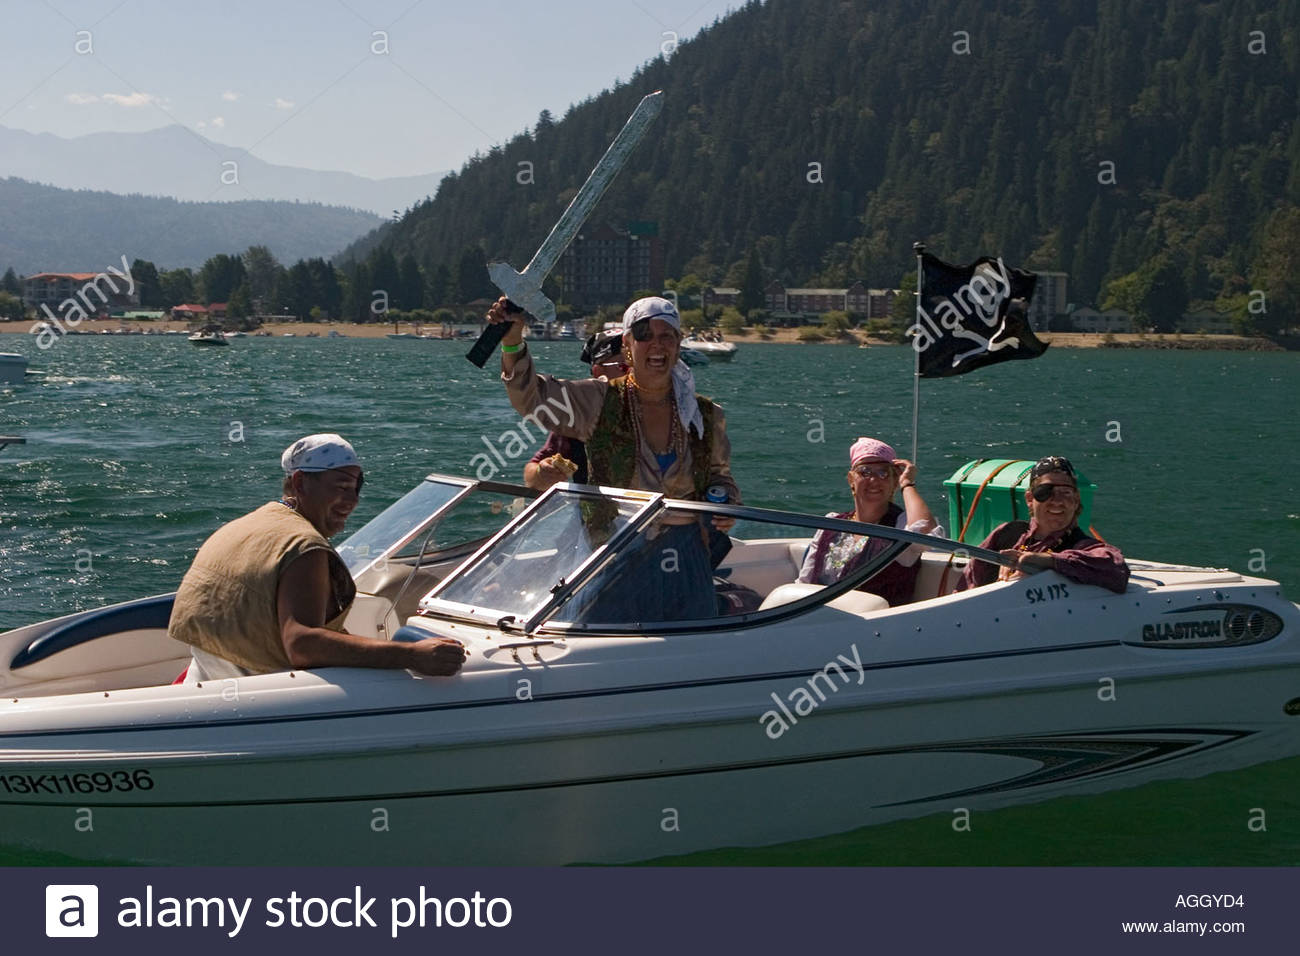 Speedboat carrying people who are dressed as pirates - Stock Image